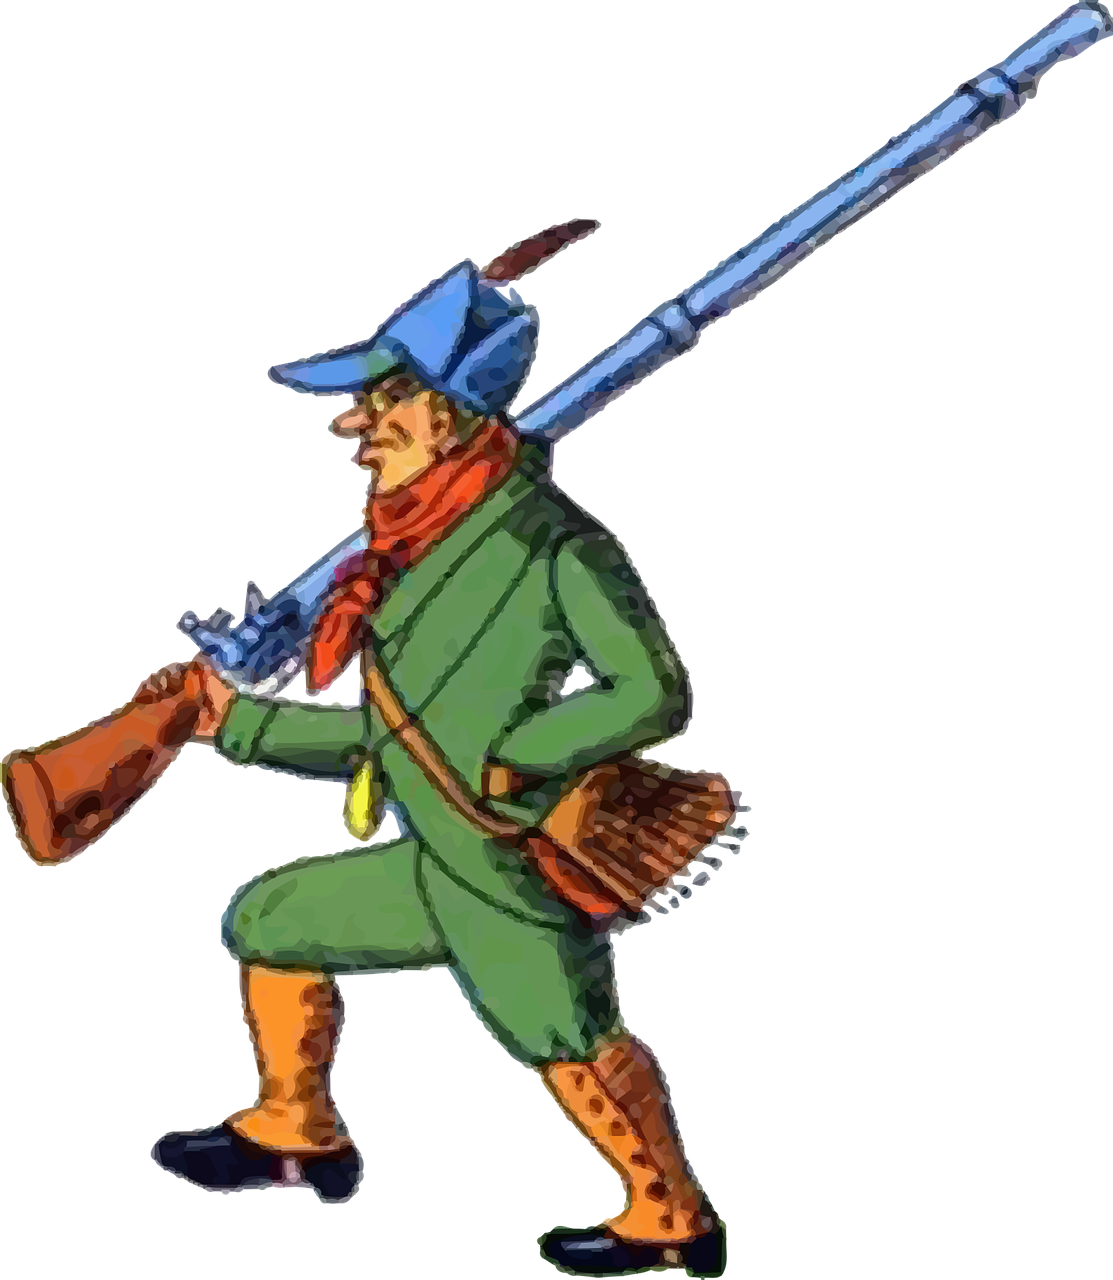 How to hunt an. Hunter clipart hunting equipment